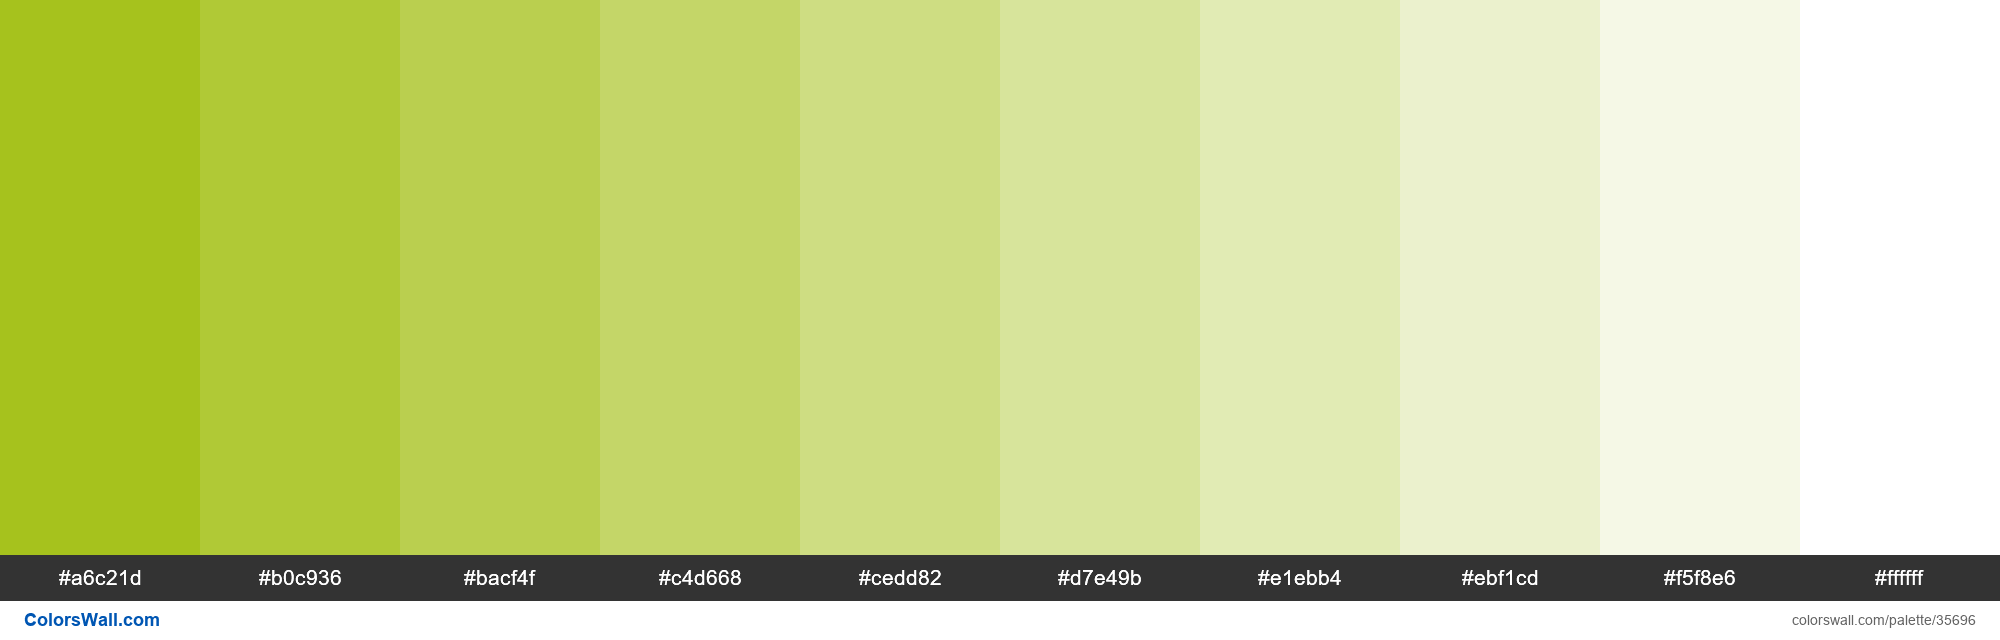 Tints XKCD Color bright olive #9cbb04 hex - #35696